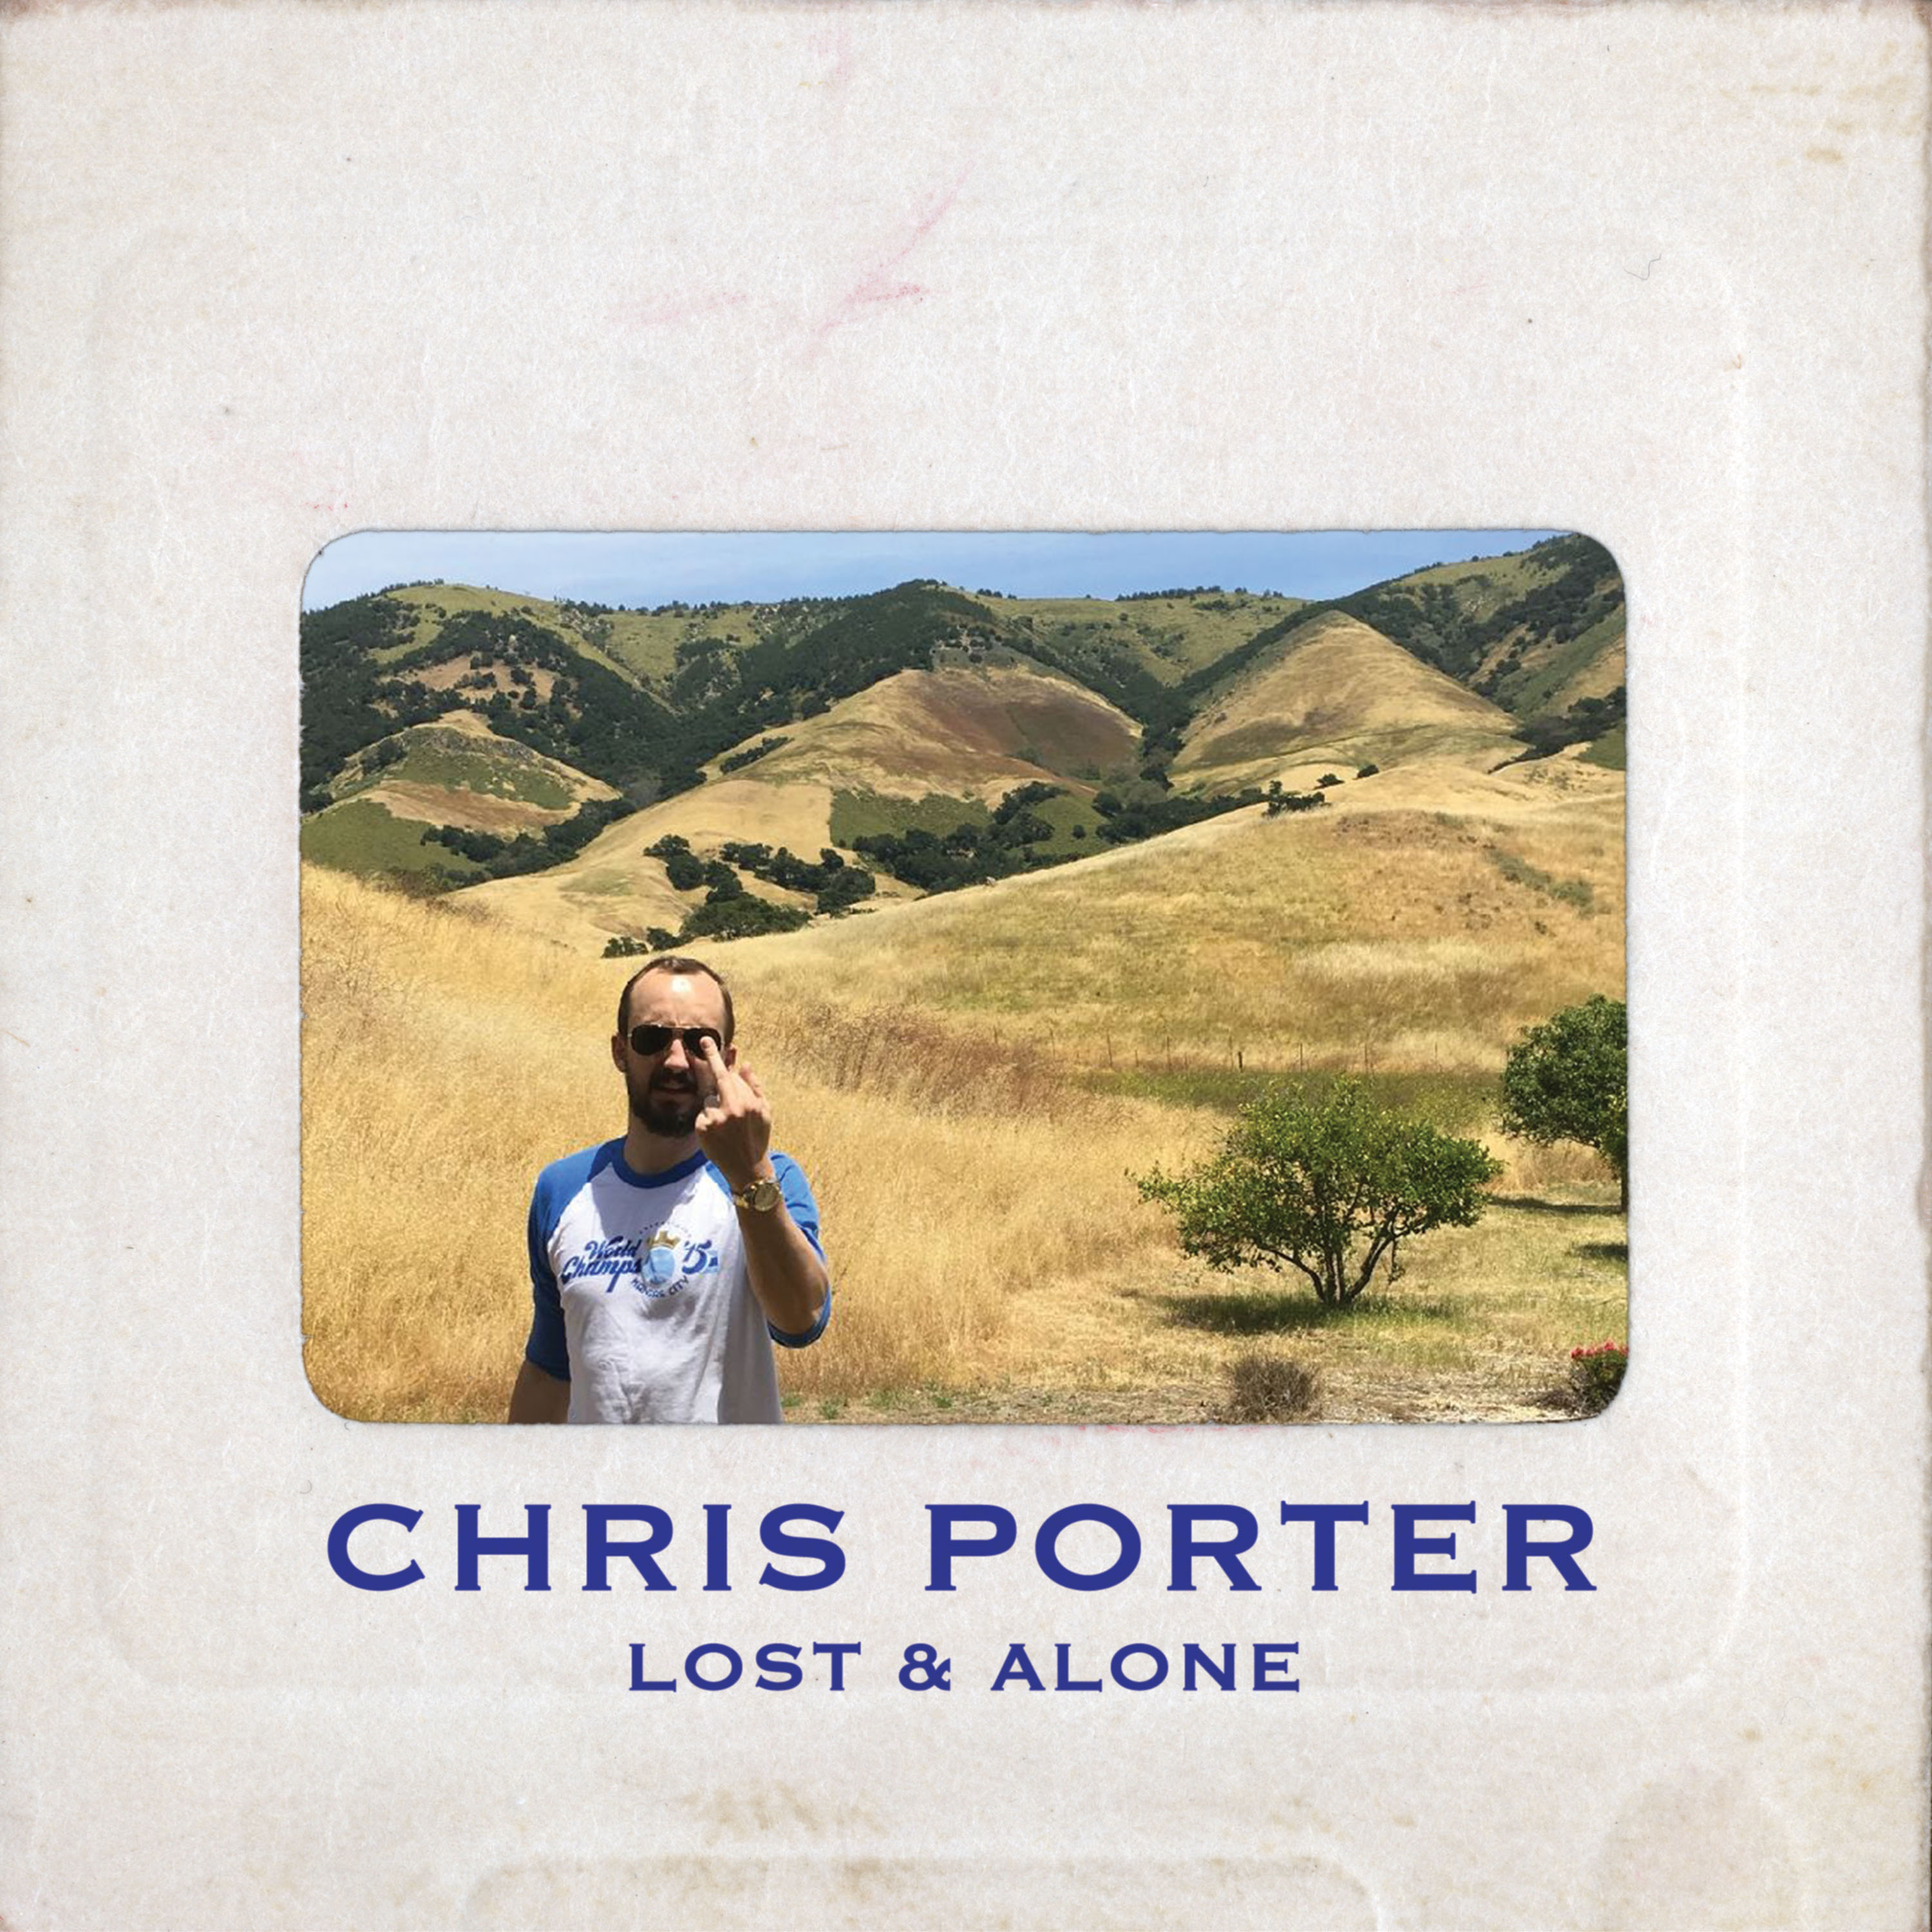 COMEDY DOWNLOAD : Chris Porter's Lost & Alone Out Friday on Stand Up! Records.